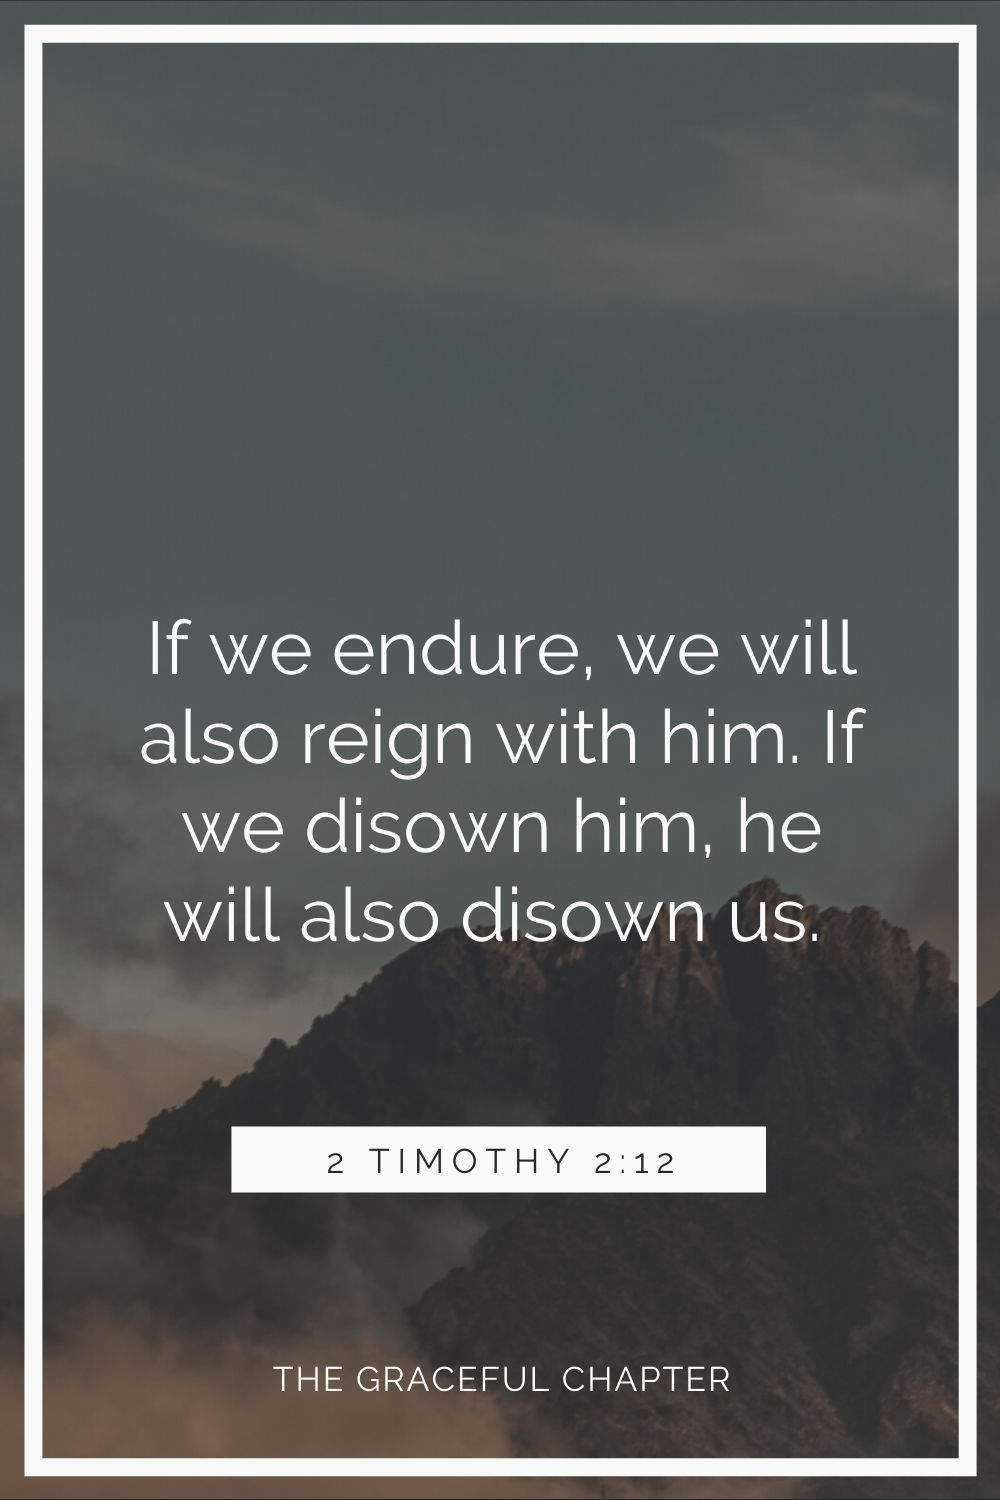 if we endure, we will also reign with him. If we disown him, he will also disown us. 2 Timothy 2:12